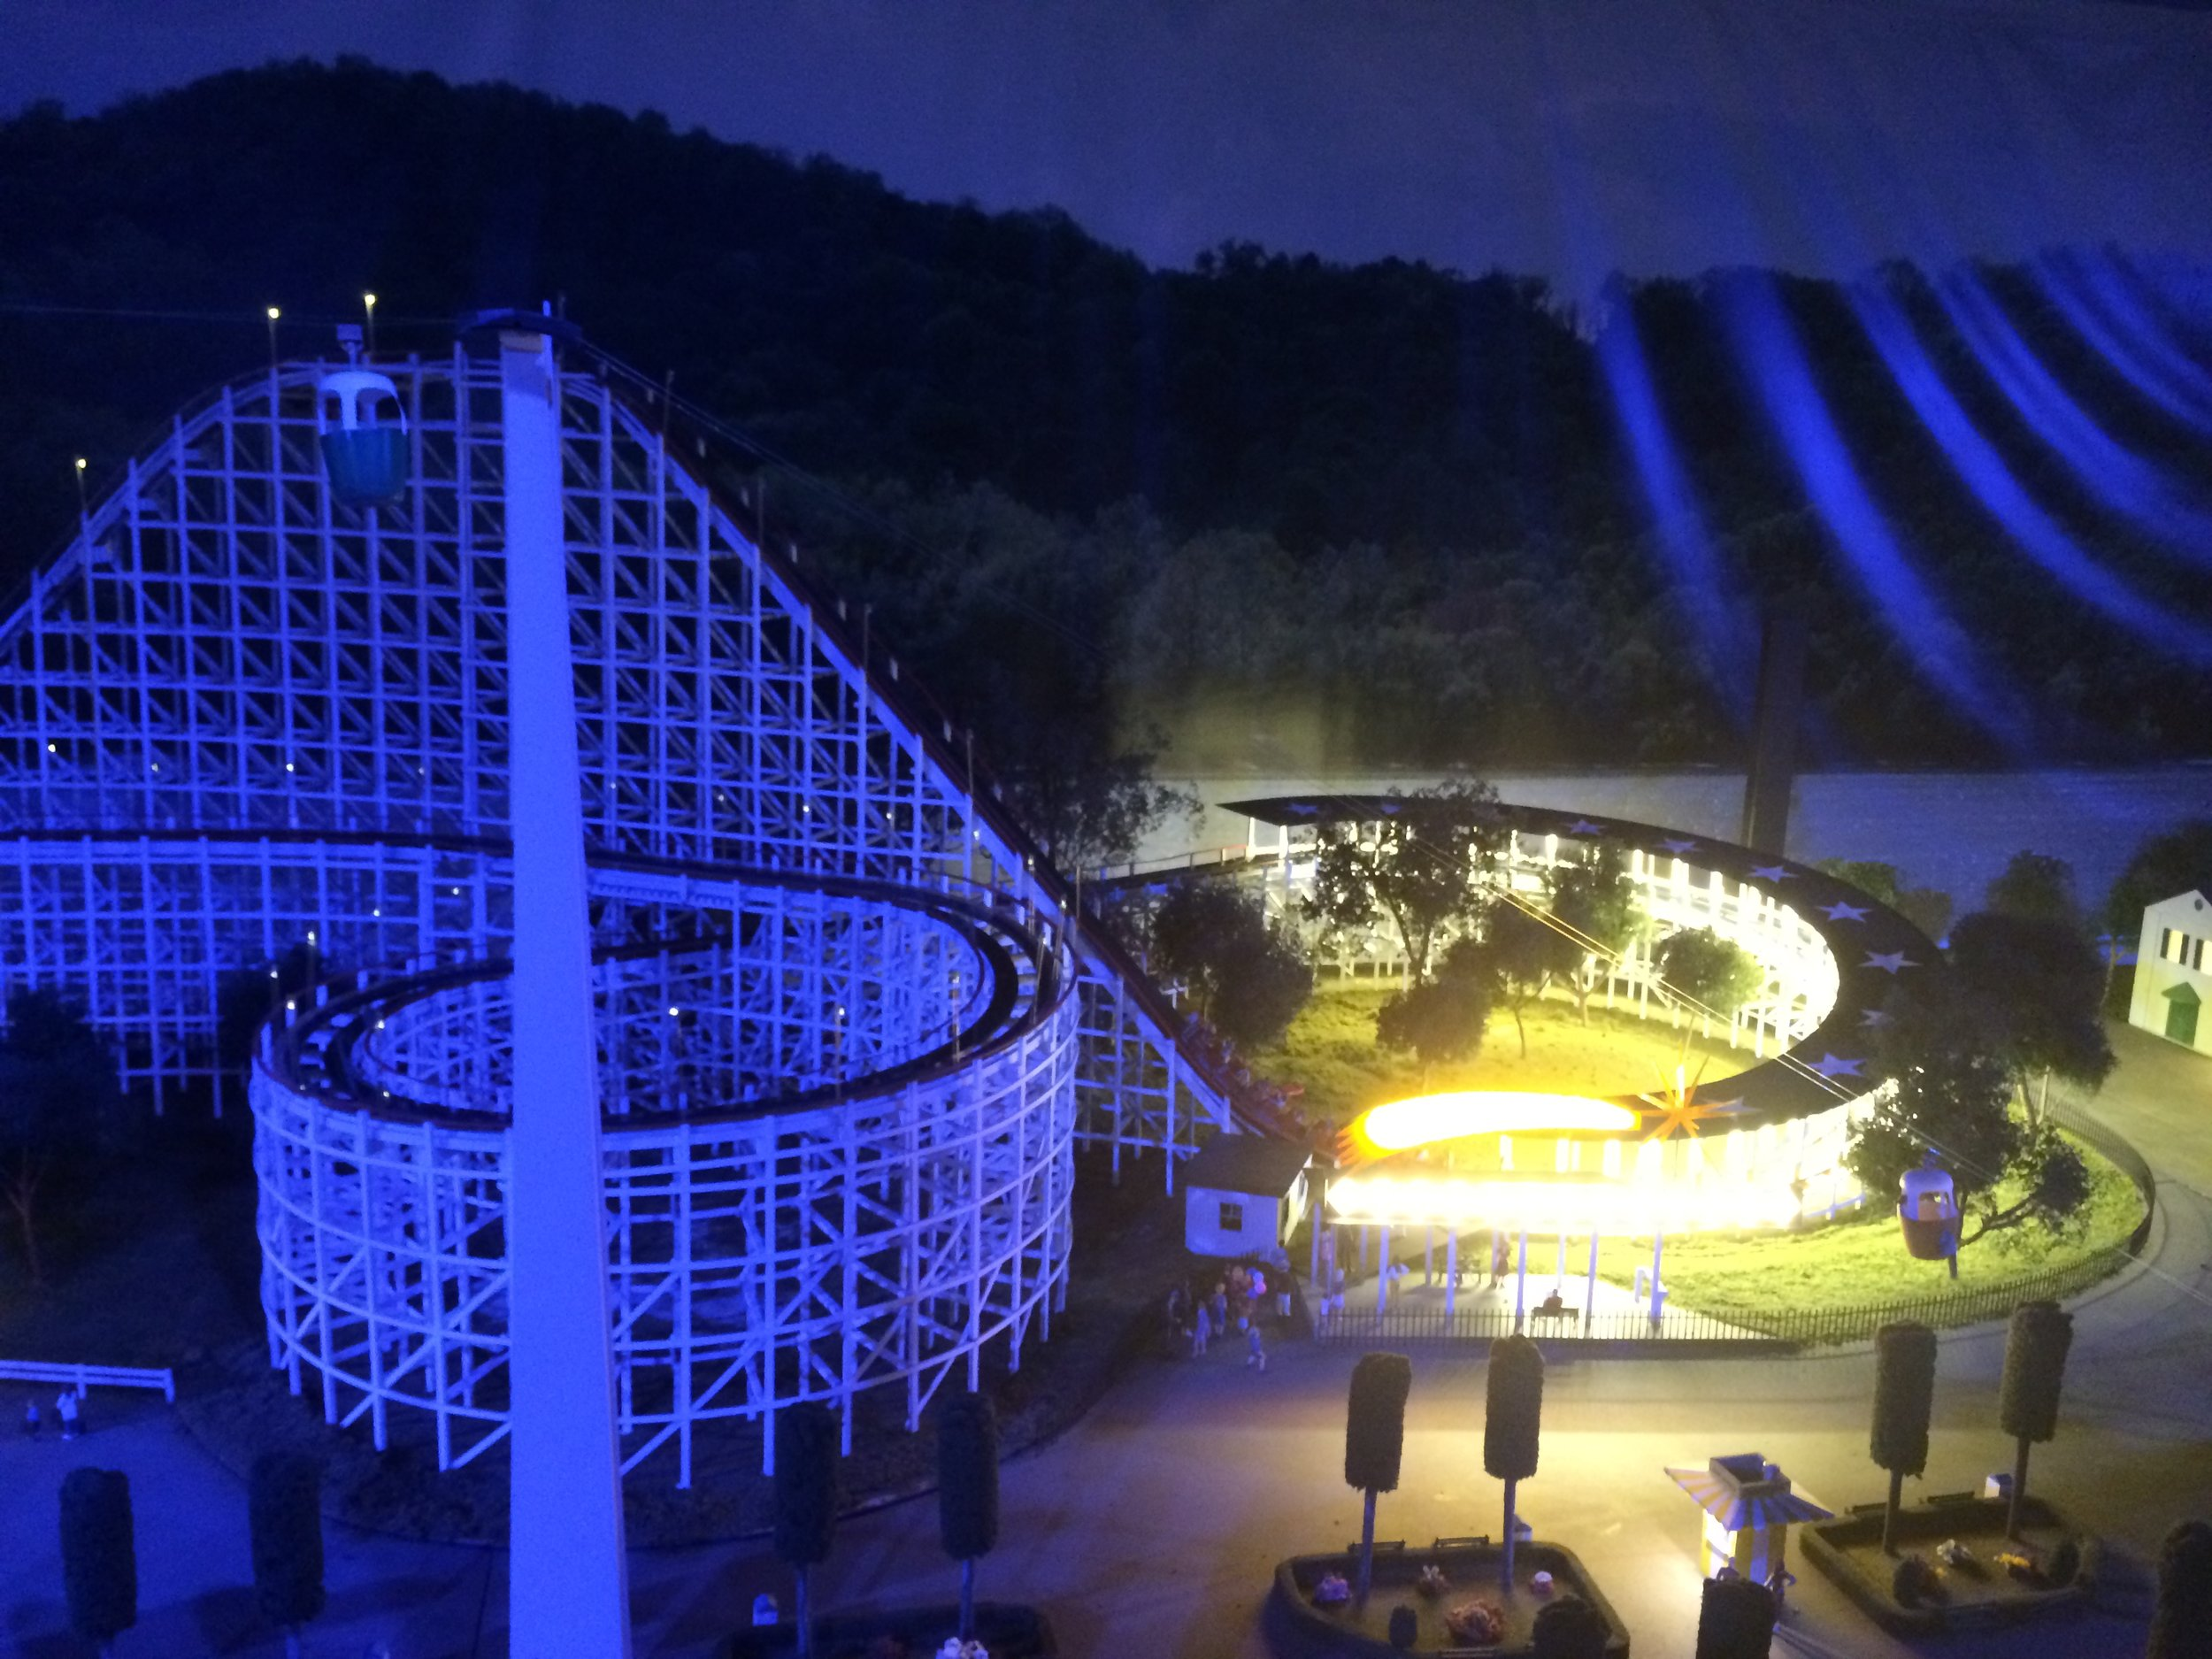 Night view of the station area. The lighting really makes the model come alive during the night cycle every 15 minutes.